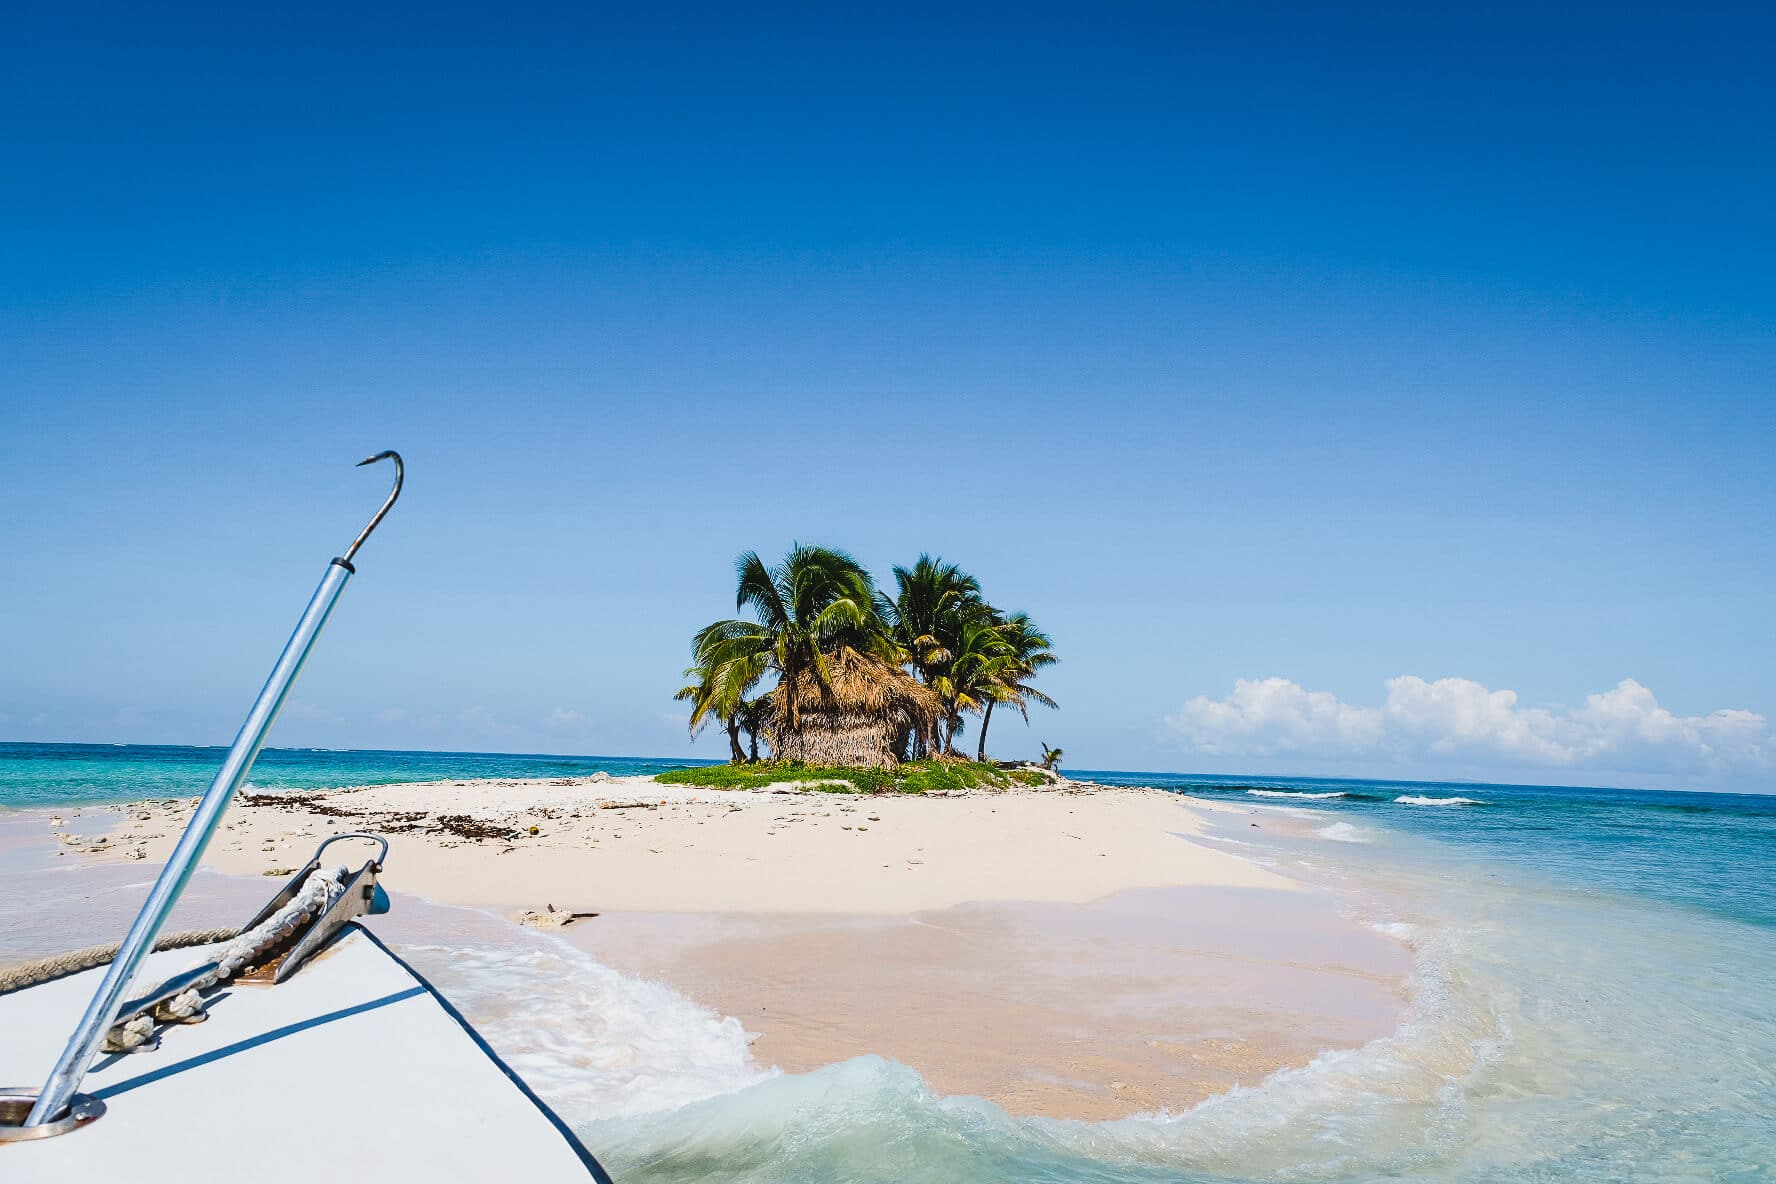 Unique and off the beaten path destination in the Caribbean